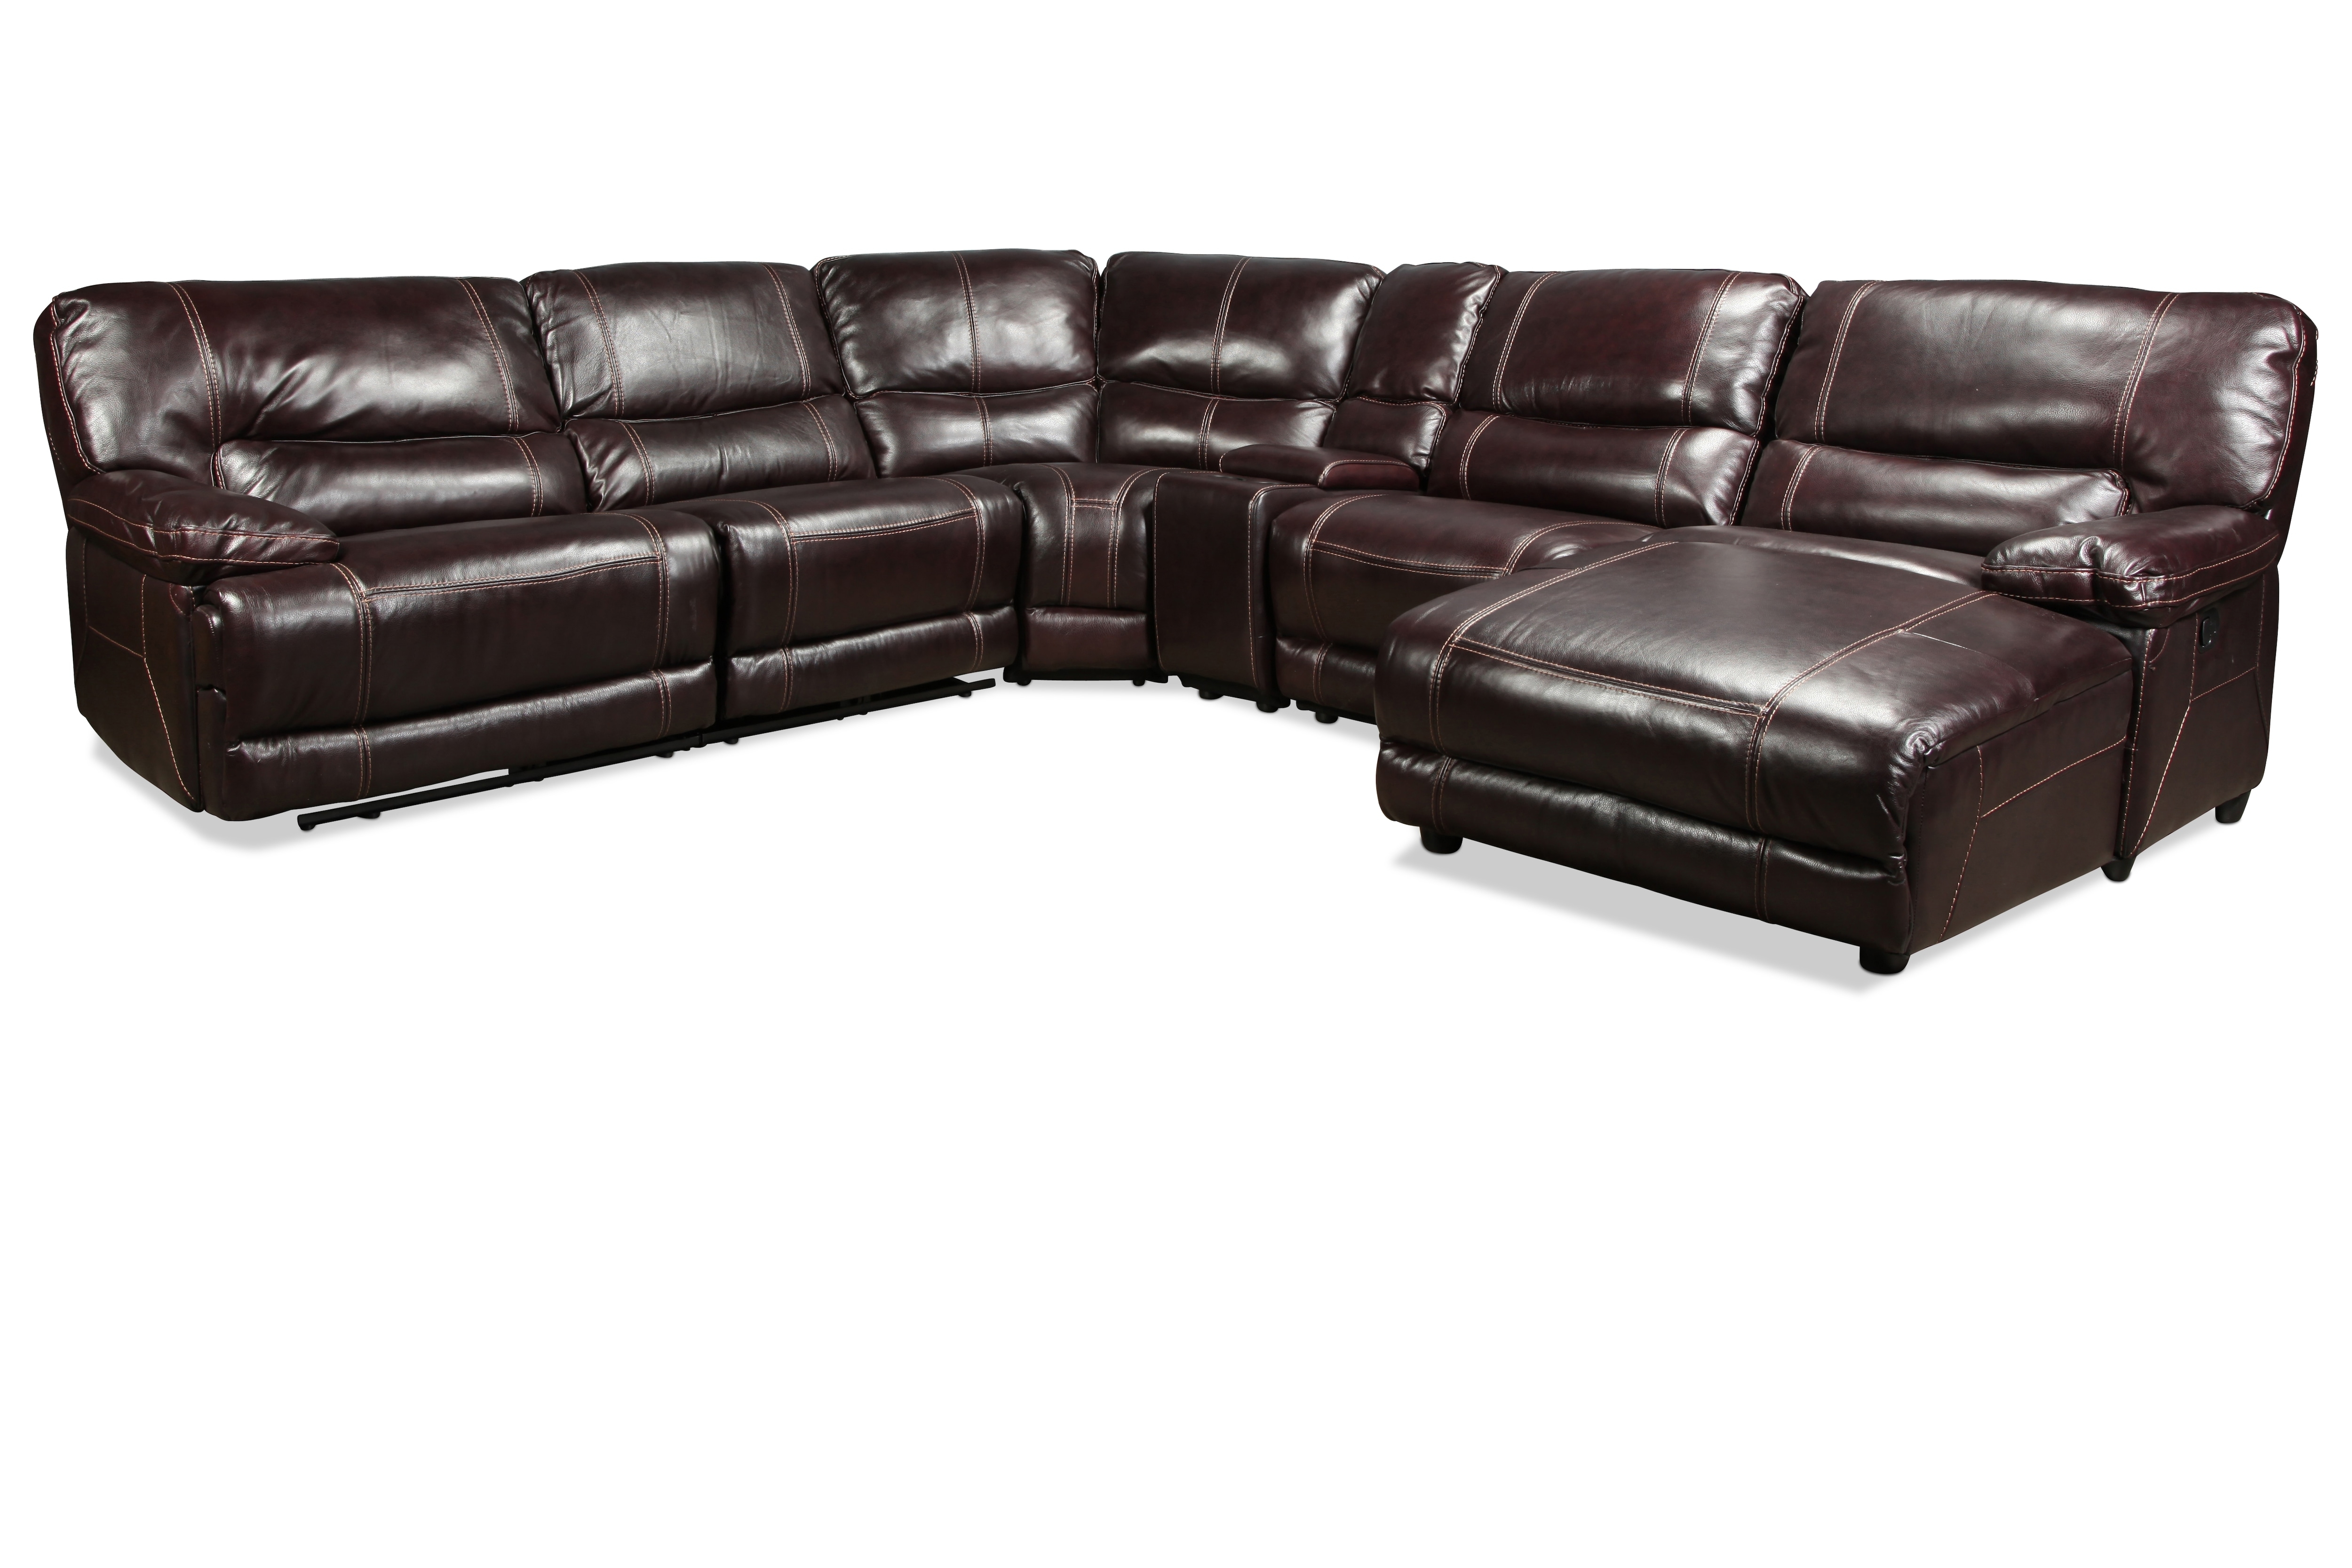 Sectionals | Levin Furniture In Cosmos Grey 2 Piece Sectionals With Laf Chaise (View 12 of 25)